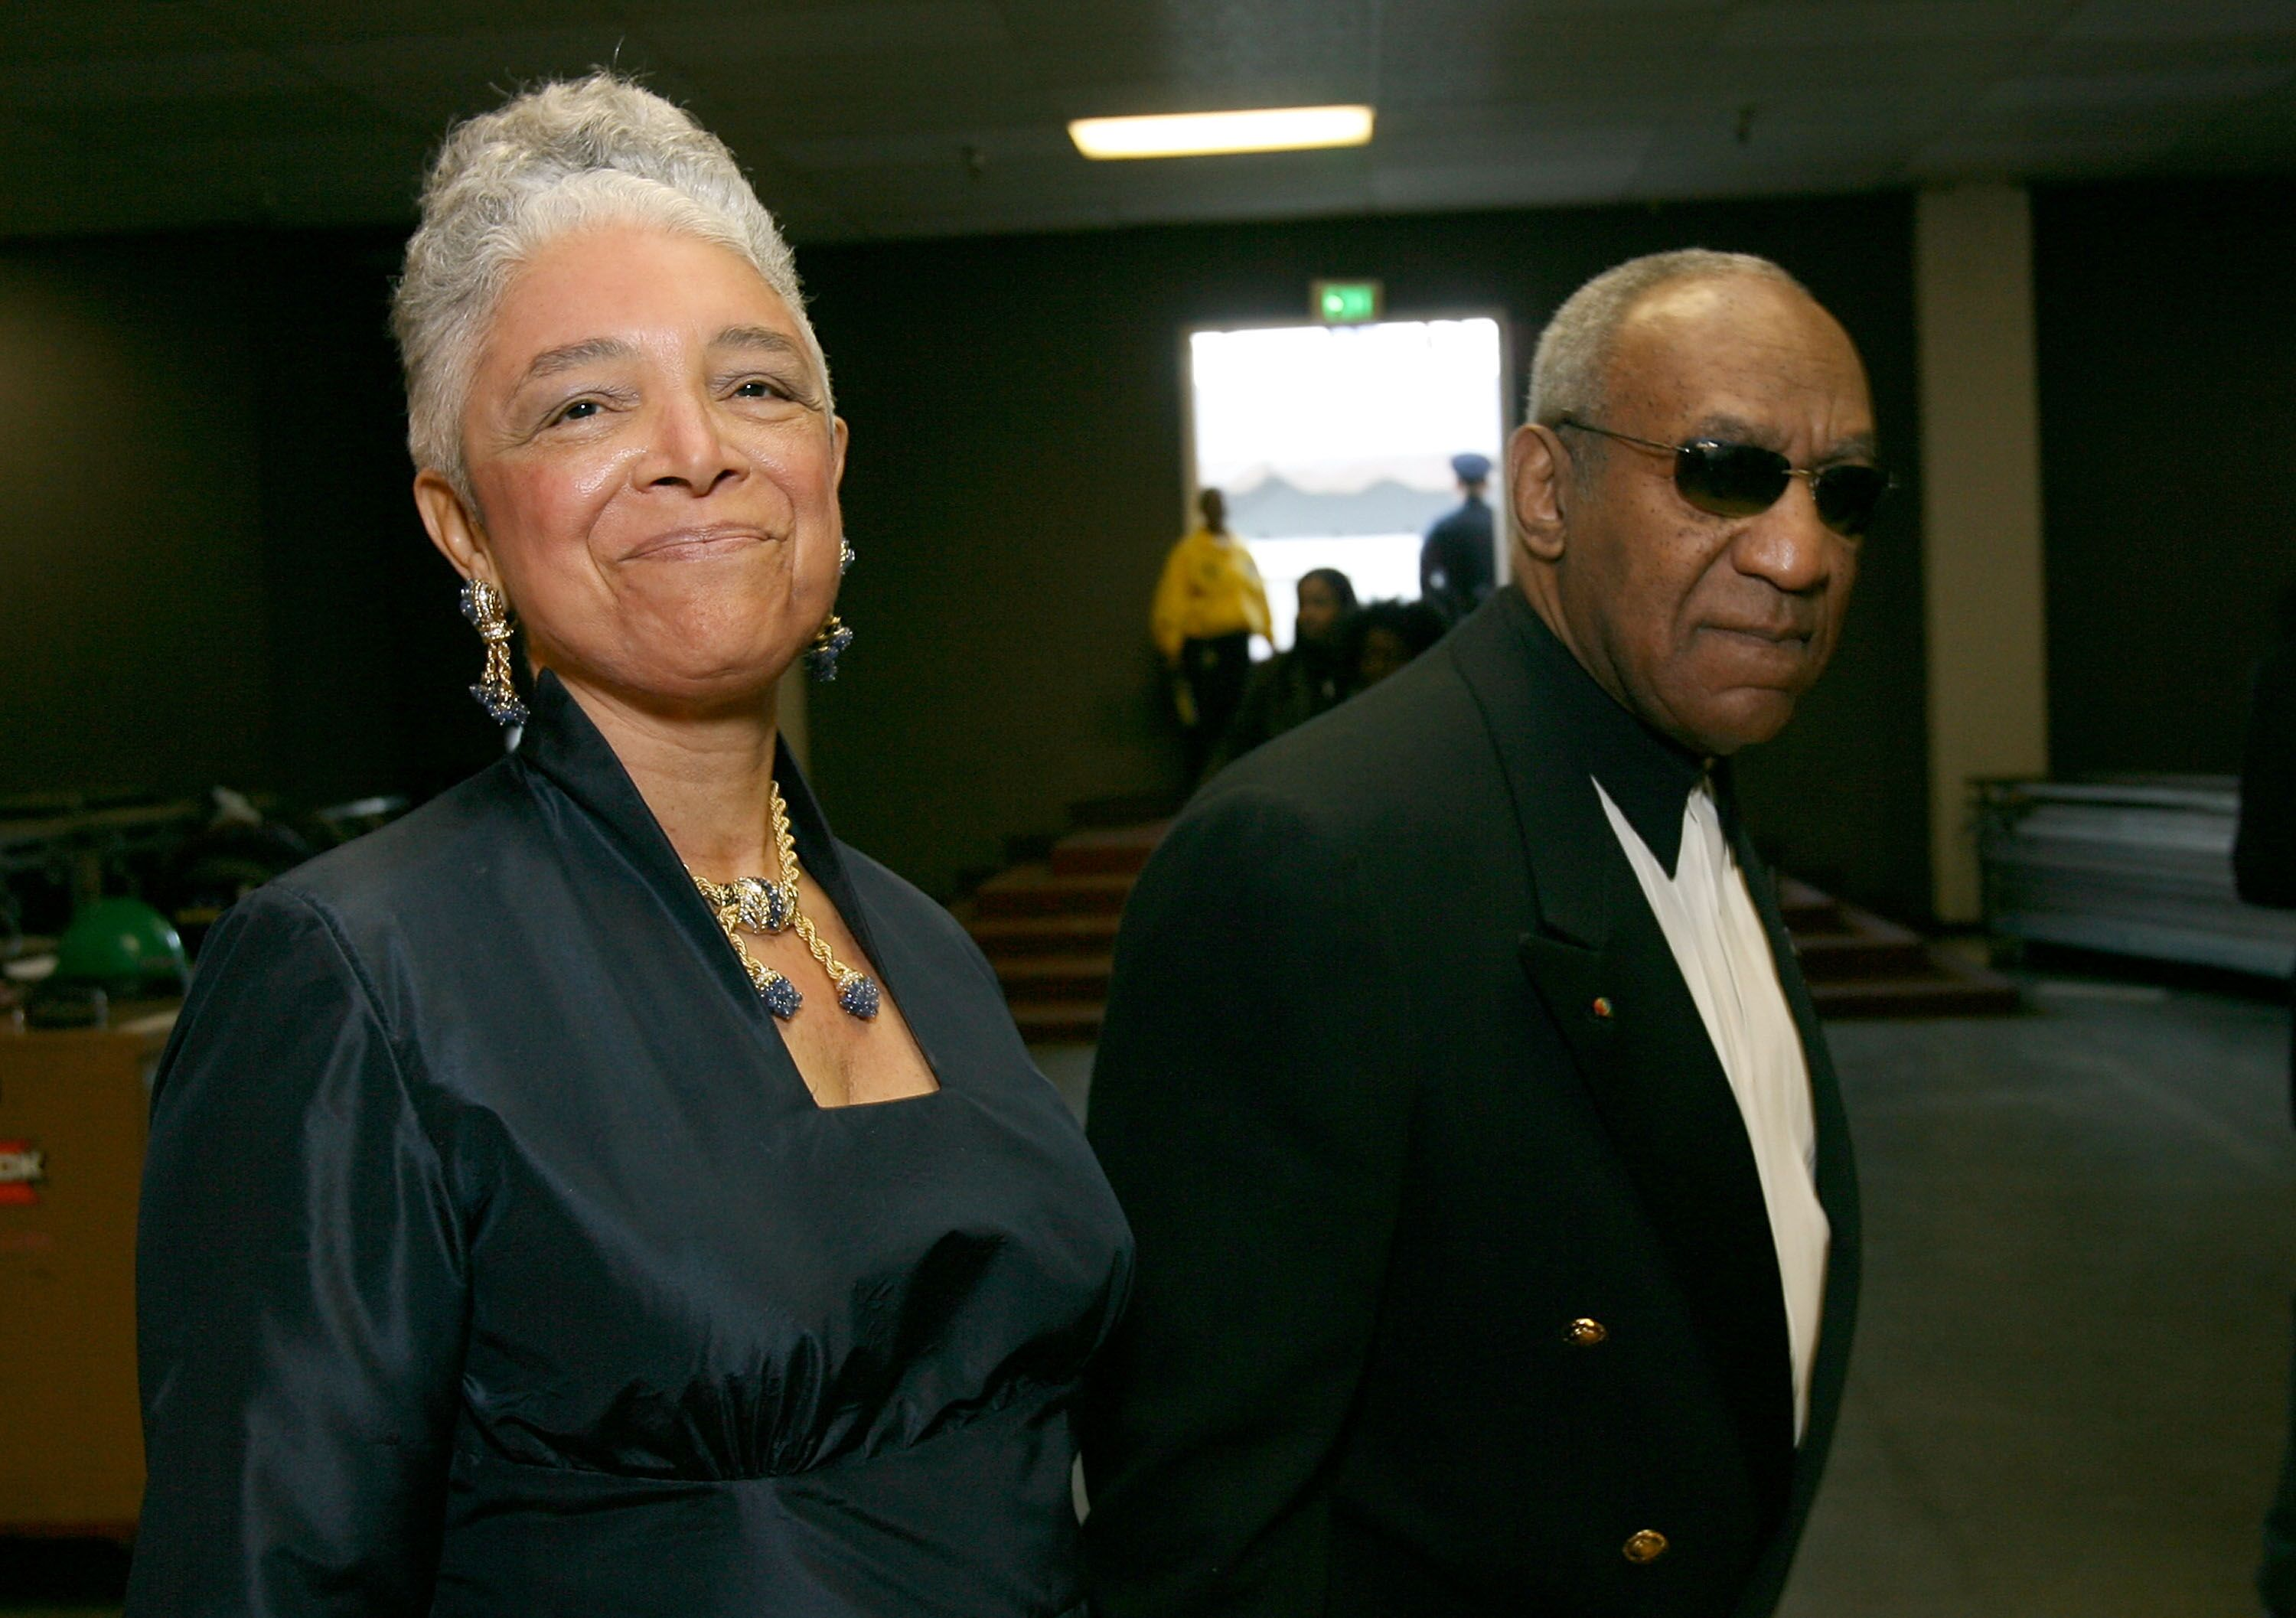 Bill Cosby and wife Camille Cosby attending the  NAACP Image Awards at the Shrine Auditorium on March 2, 2007 in Los Angeles, California. | Photo: Getty